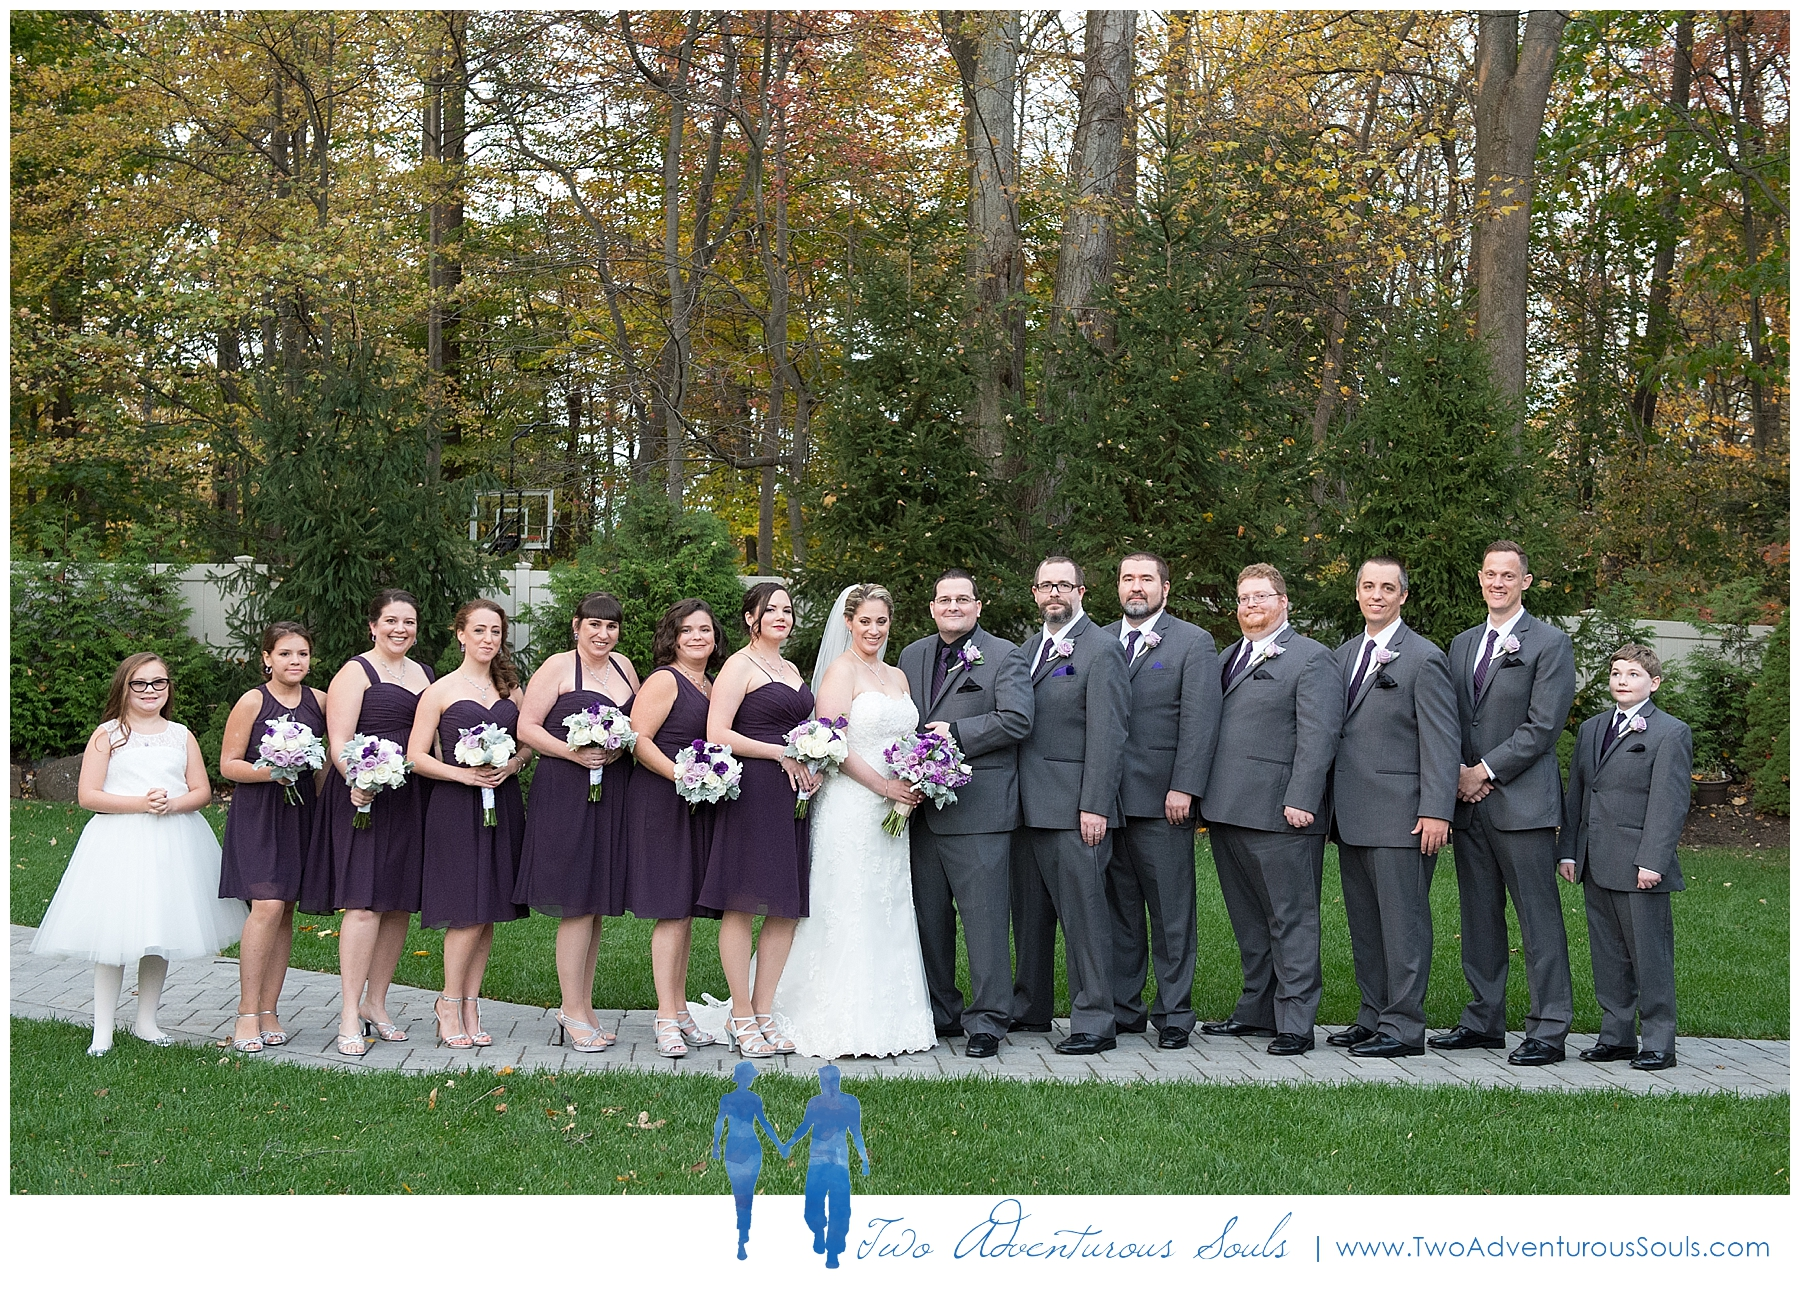 Old-Tappan-Manor-Wedding-New-Jersey-Wedding-Photographers-Destination-Wedding-Photographers_0022.jpg